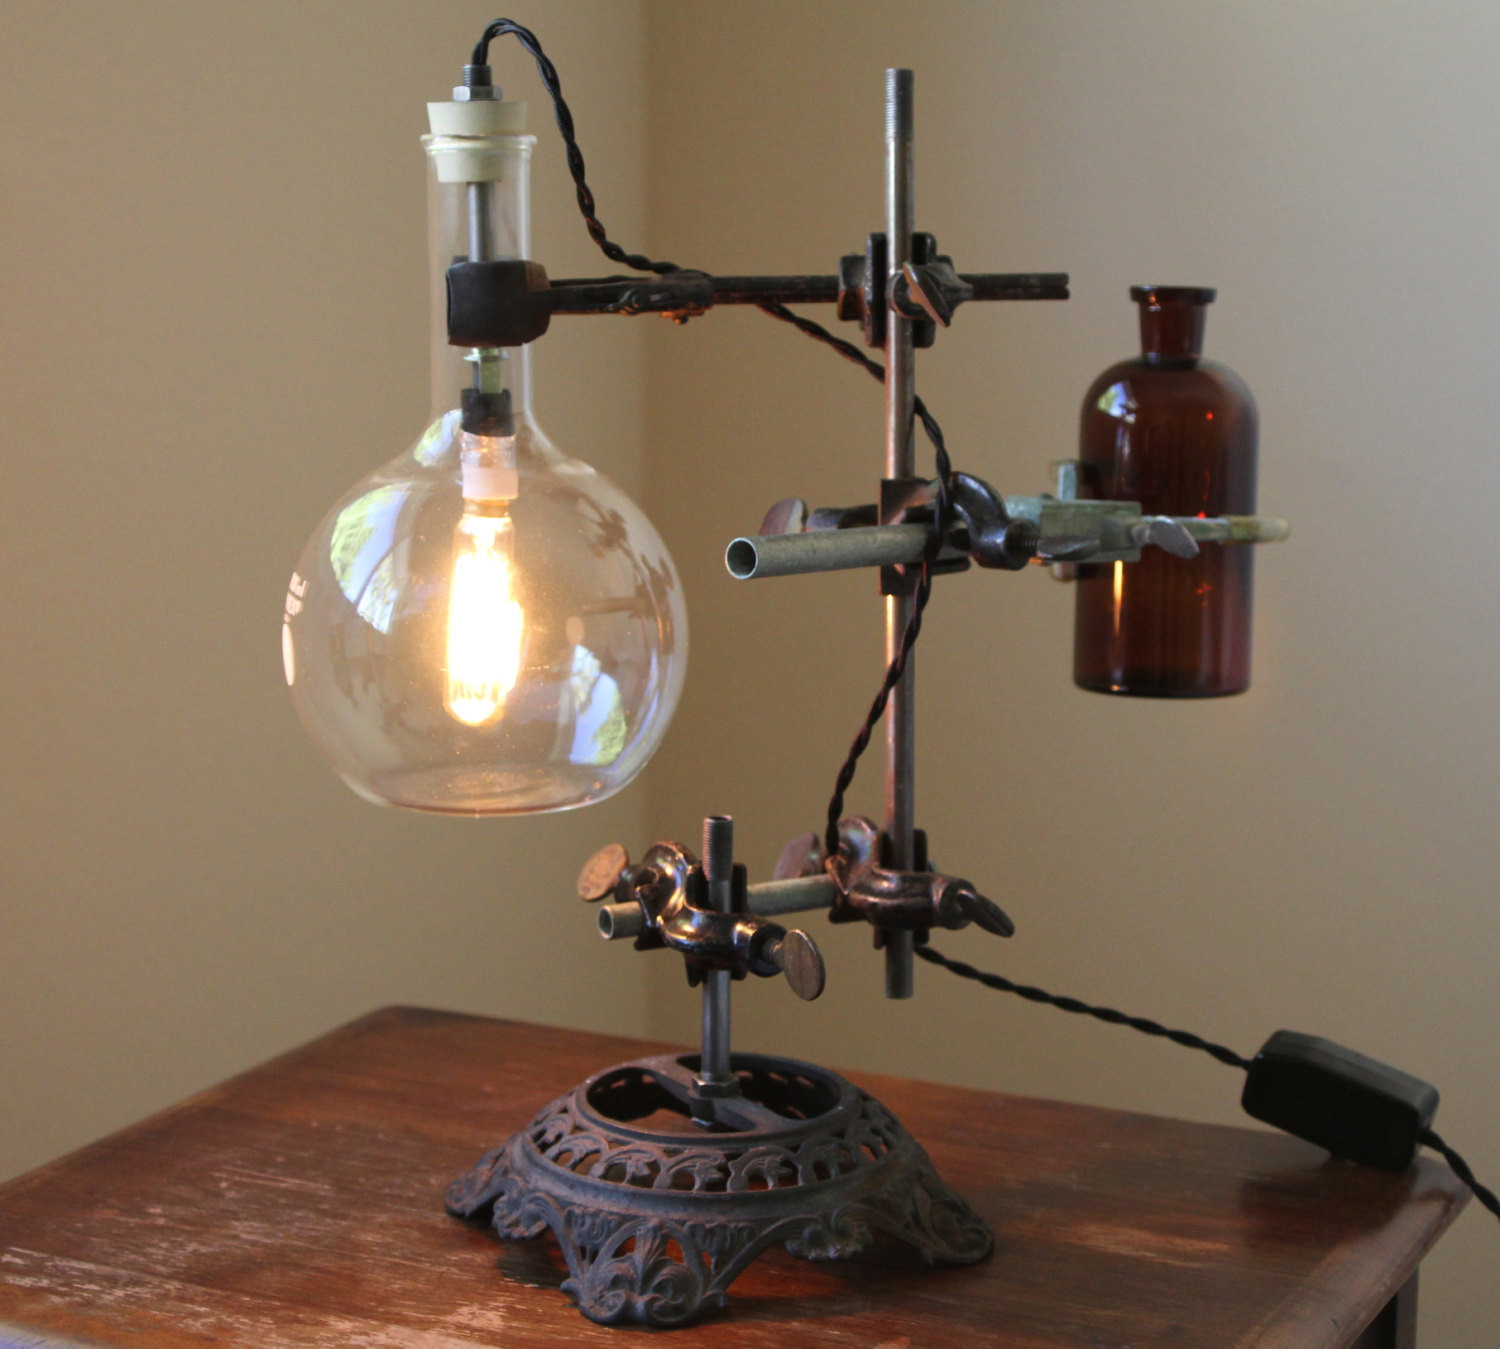 Best ideas about Industrial Desk Lamp . Save or Pin Industrial desk lamp steampunk lamp industrial lamp Now.